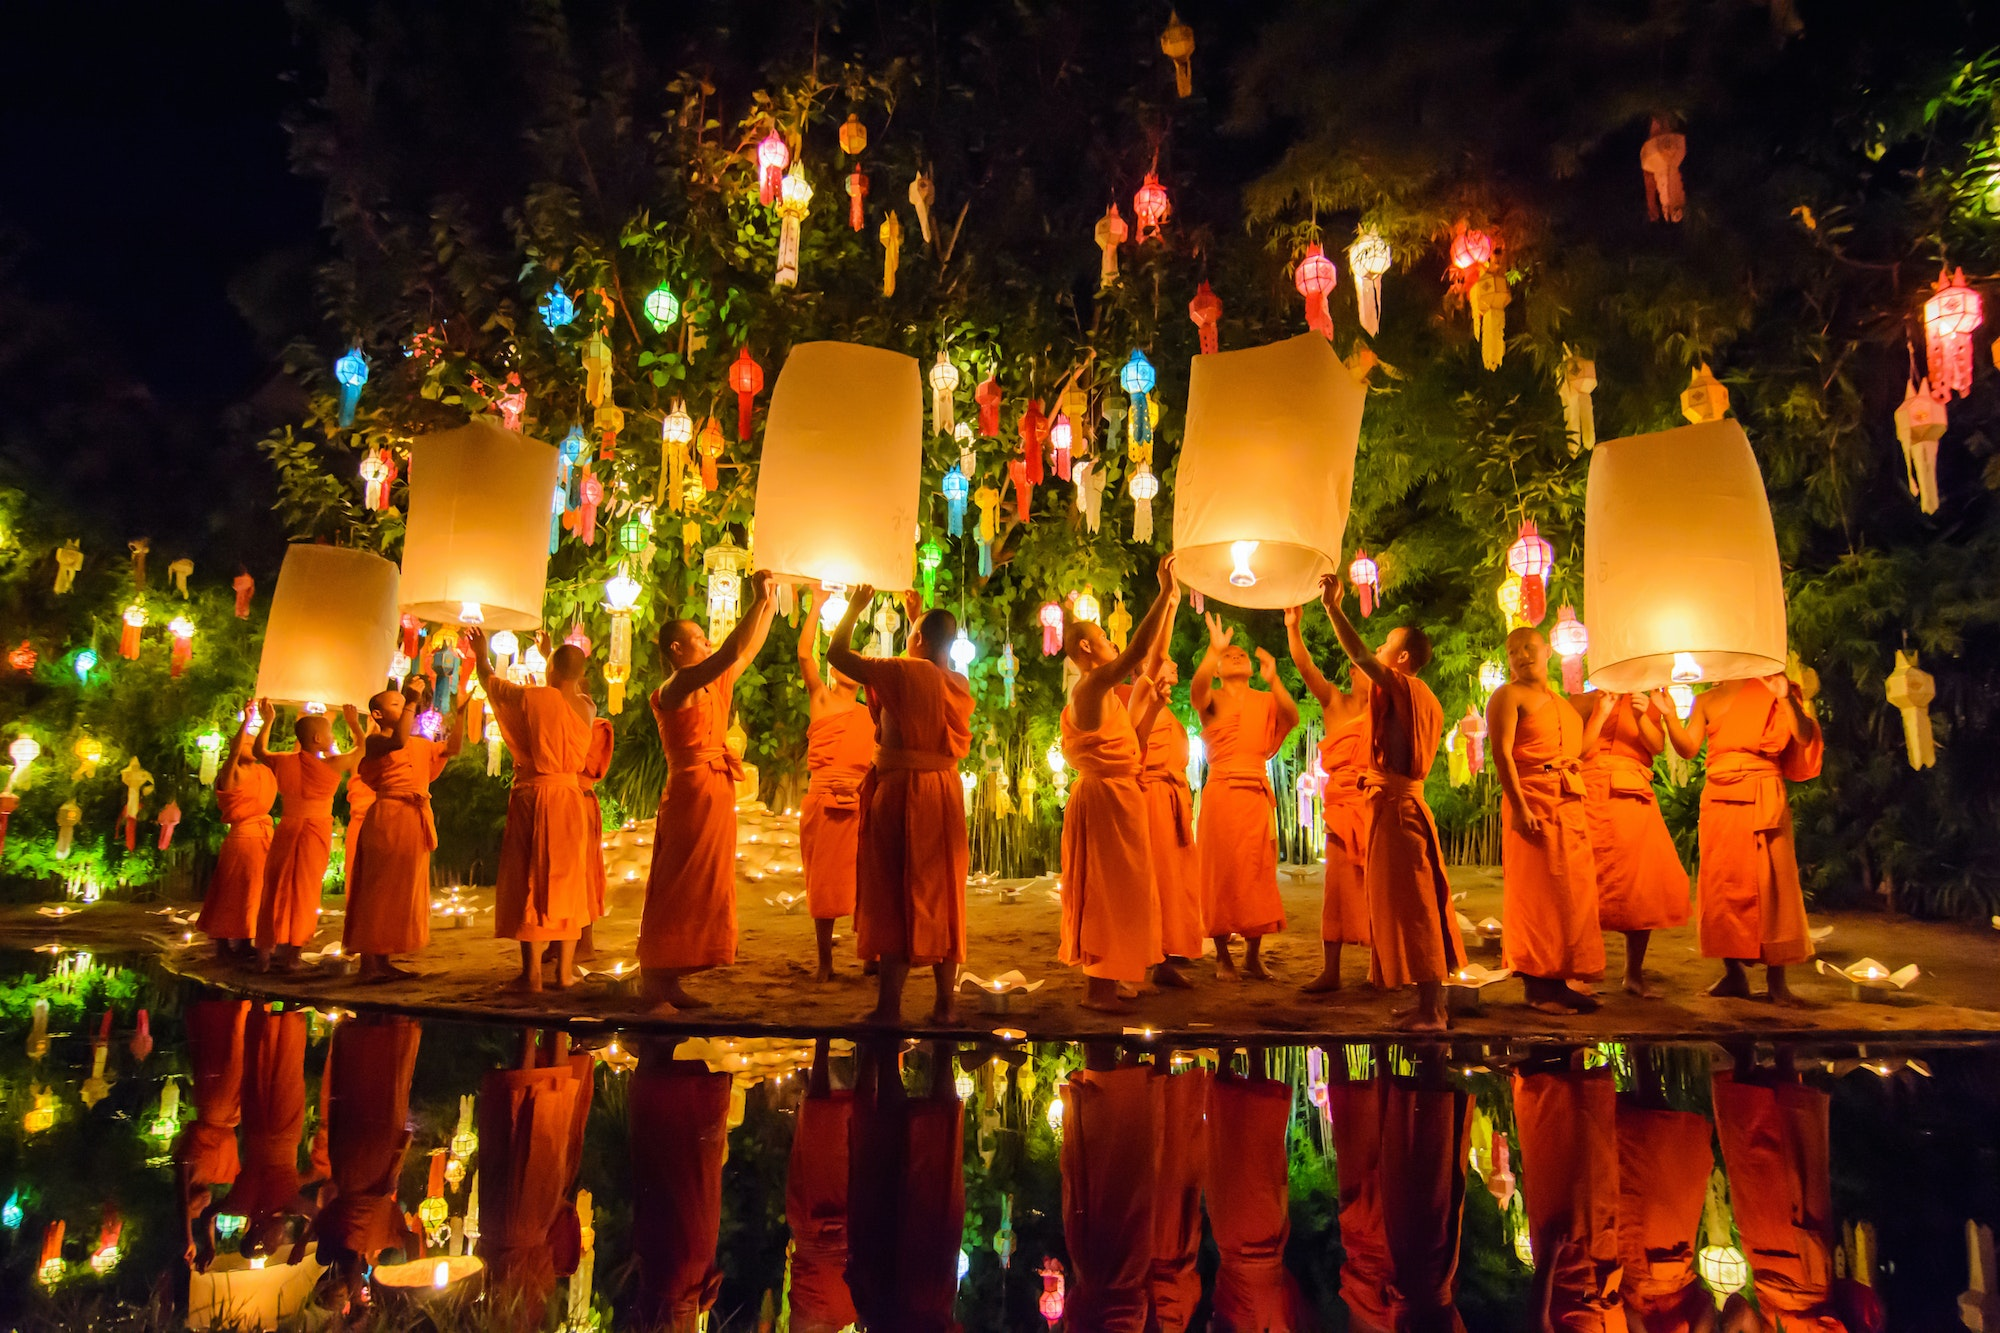 Loi Krathong celebrations, which coincide with the Yi Peng Festival in northern Thailand, take place more broadly across Thailand.